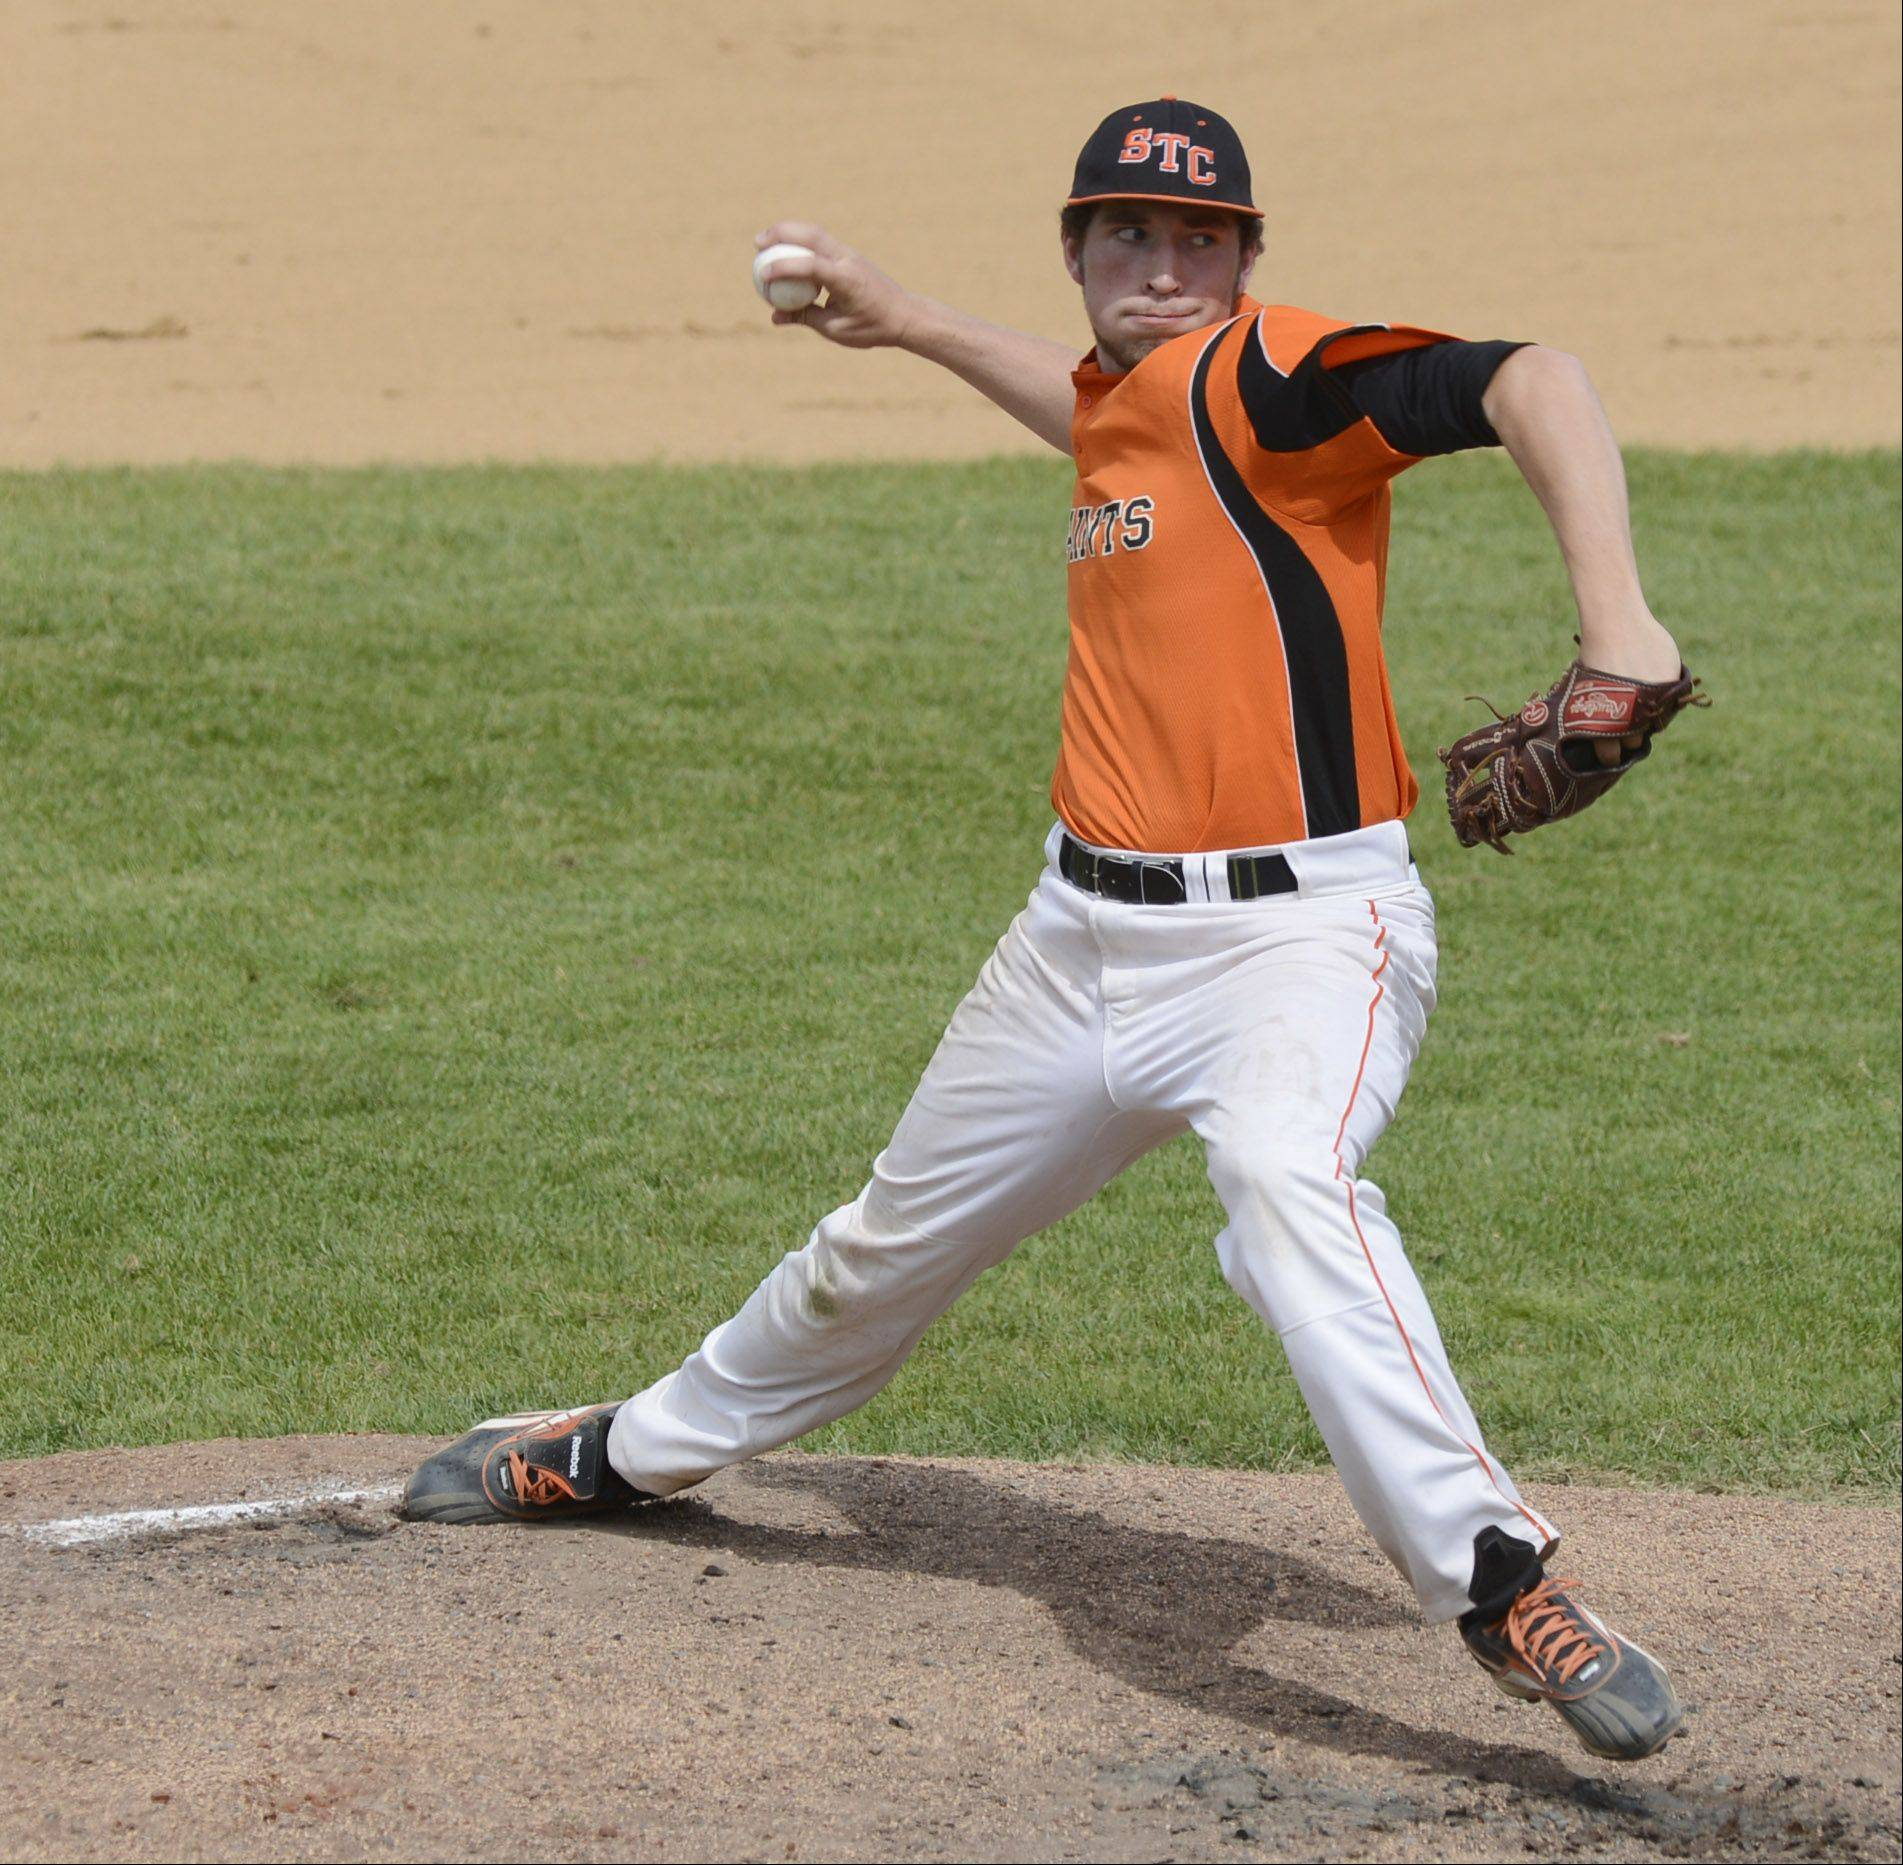 St. Charles East pitcher Matt Starai delivers during the Class 4A baseball third-place game against Neuqua Valley at Silver Cross Field in Joliet on Saturday.